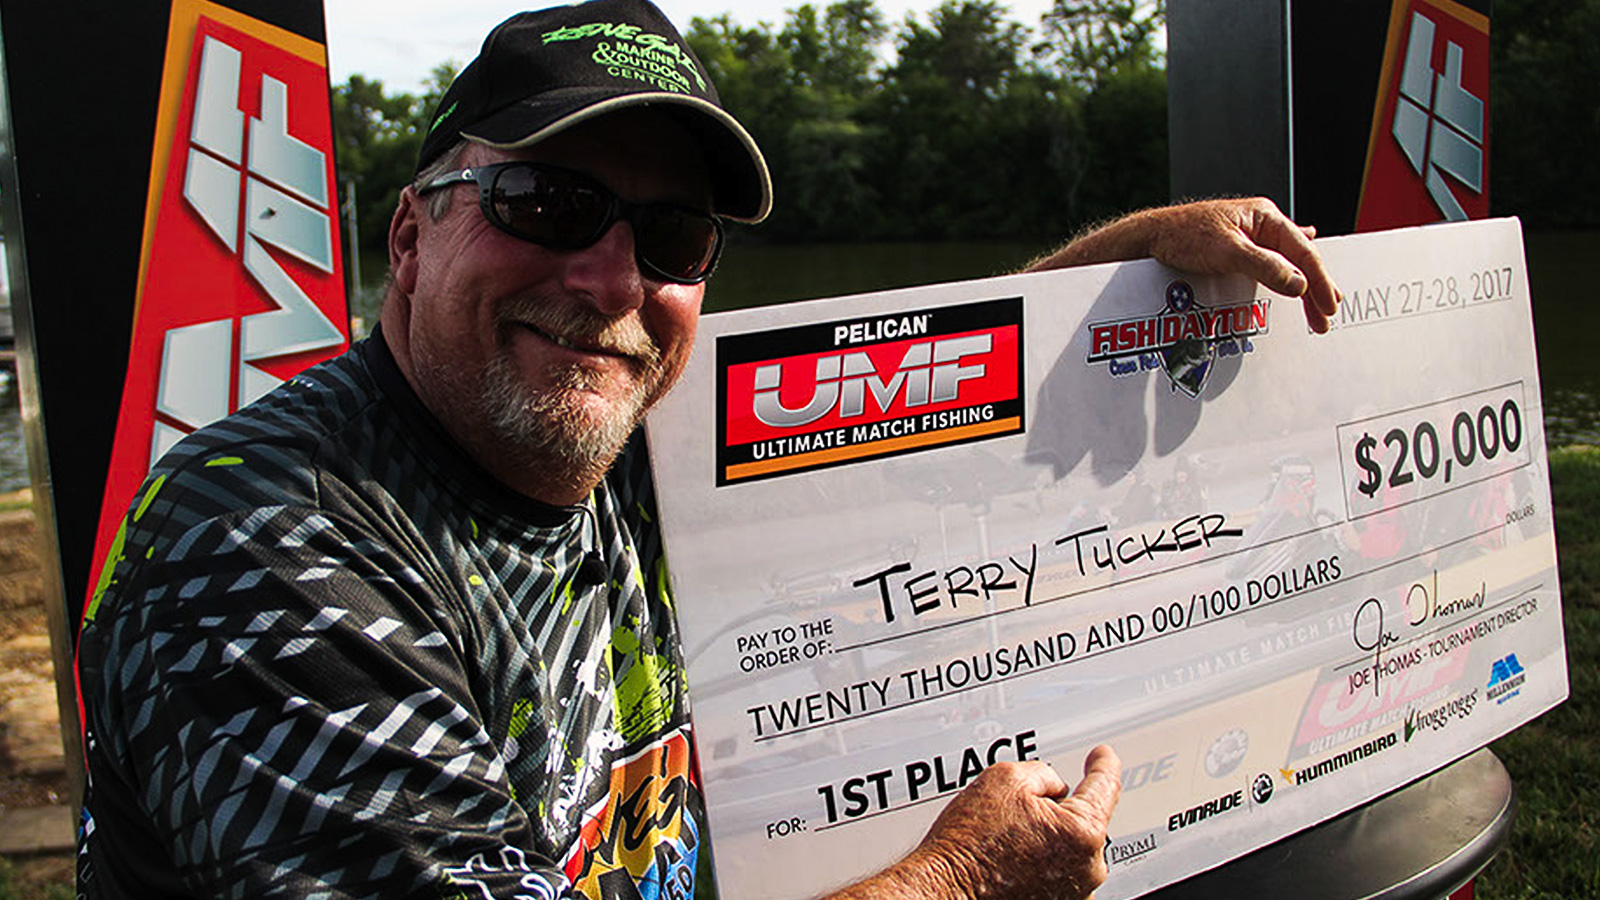 Terry tucker wins ultimate match fishing on chickamauga for Ultimate match fishing